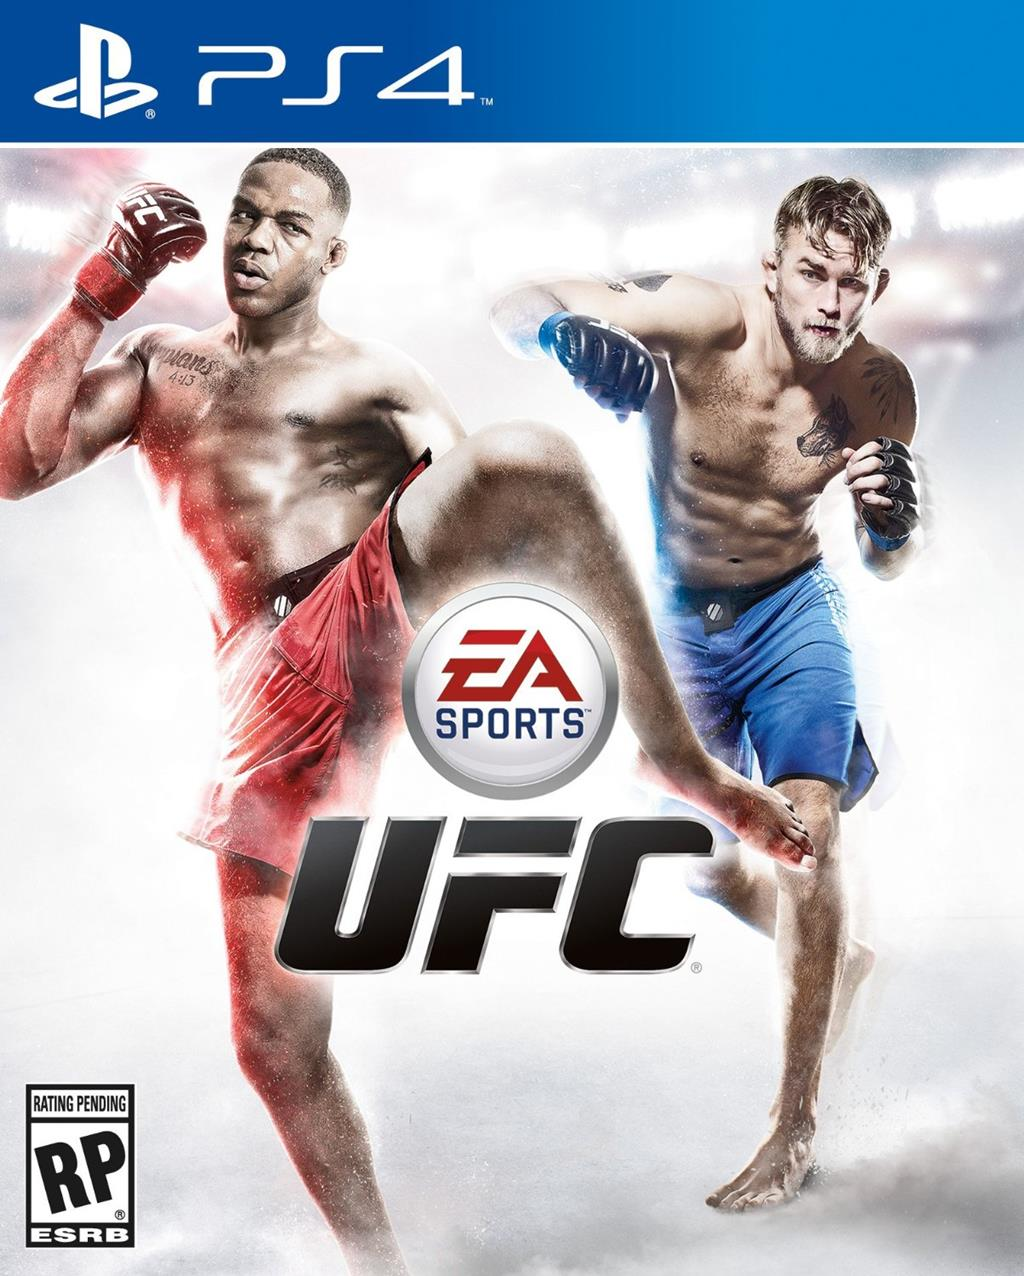 Mixed Martial Arts Games: EA Sports UFC Game Wallpapers And Trailer